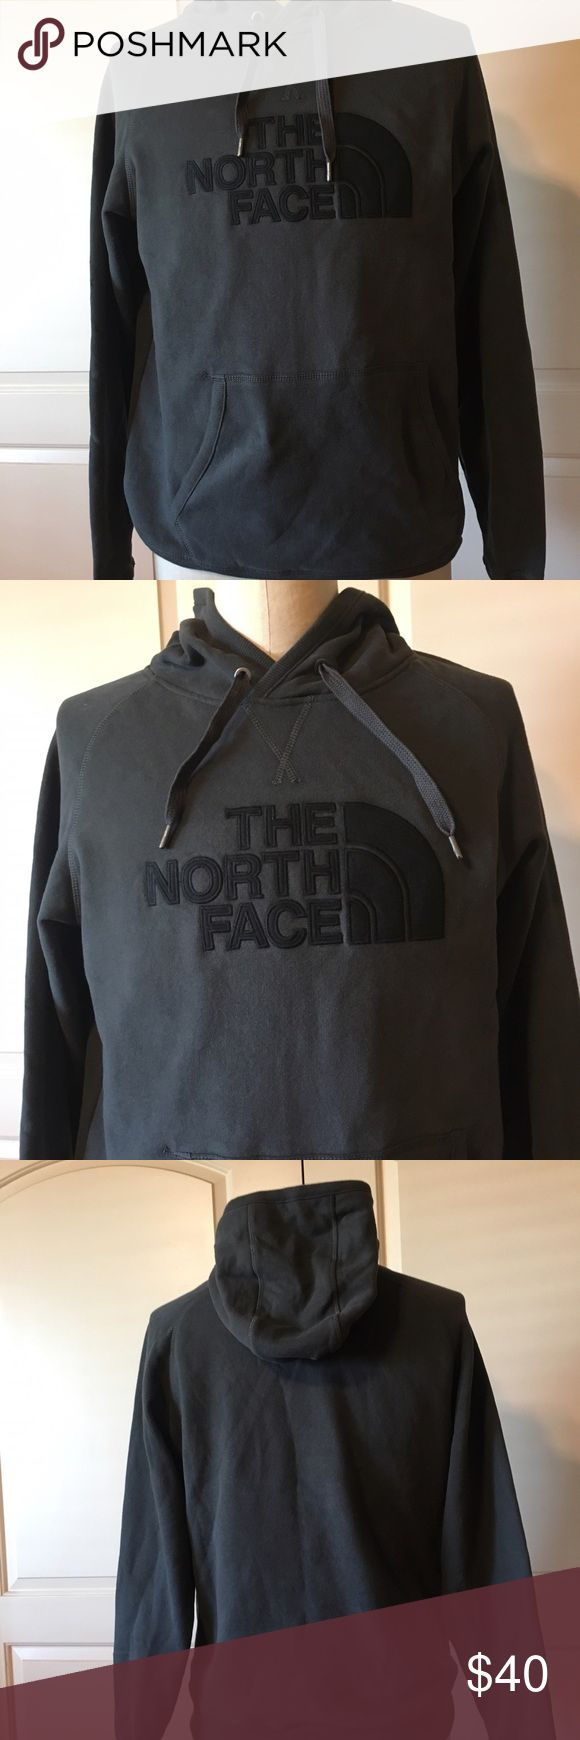 NWT Mens The North Face Pullover Hoodie NWT Asphalt Gray with Black Logo,  Pullover.  Smoke & Pet Free Home. The North Face Shirts Sweatshirts & Hoodies